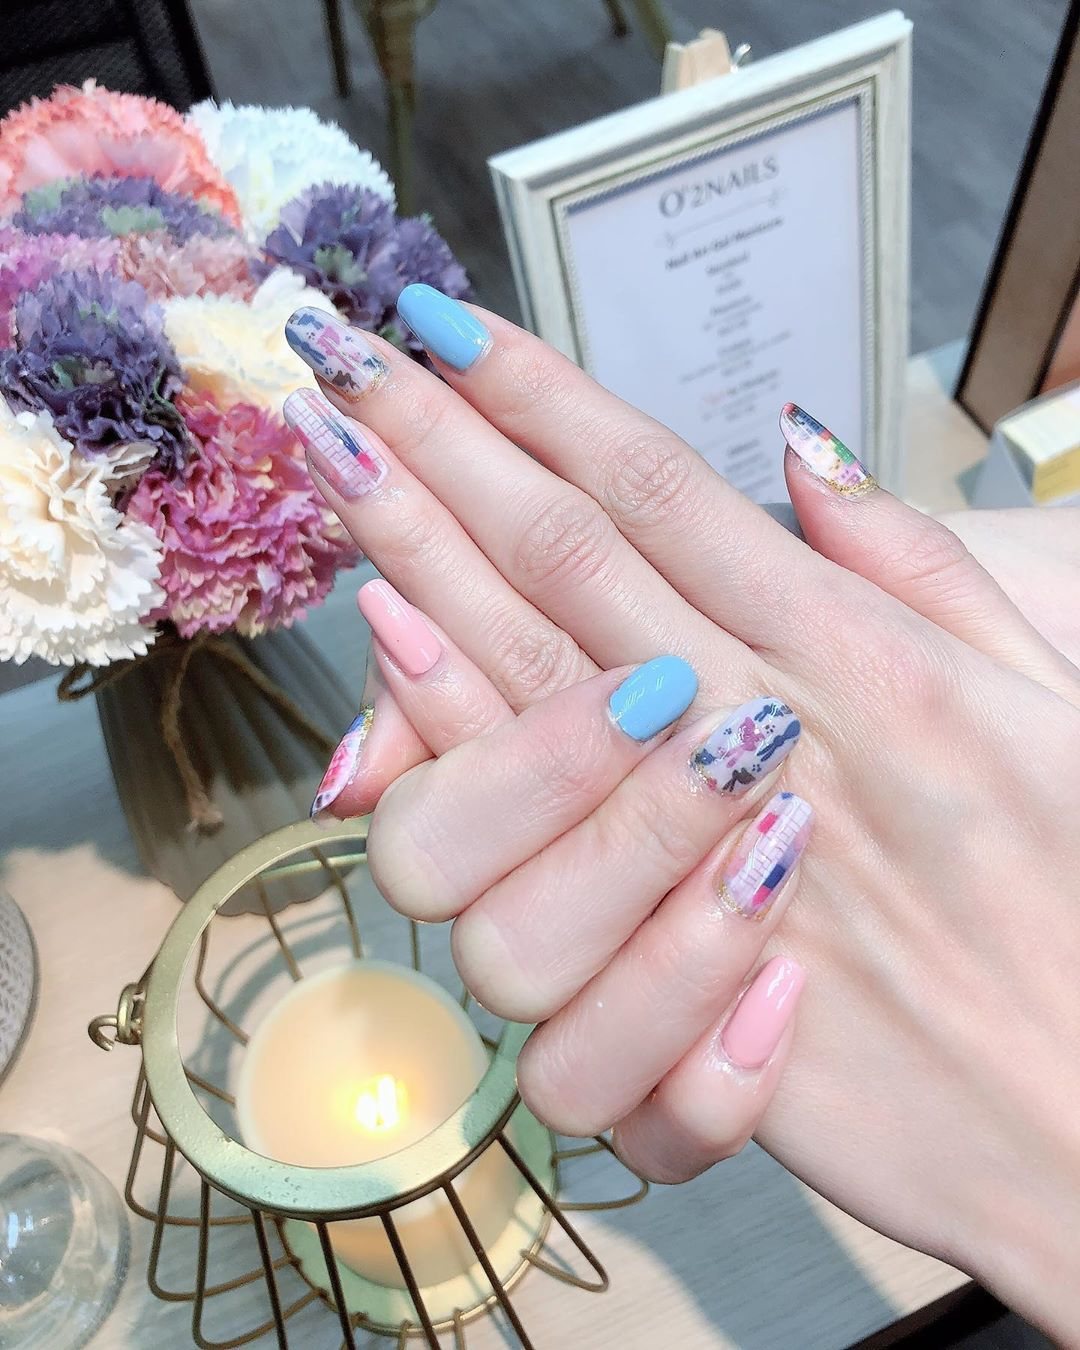 Matte Nail Salon Near Me : matte, salon, Salons, Classic, Manicure, Under